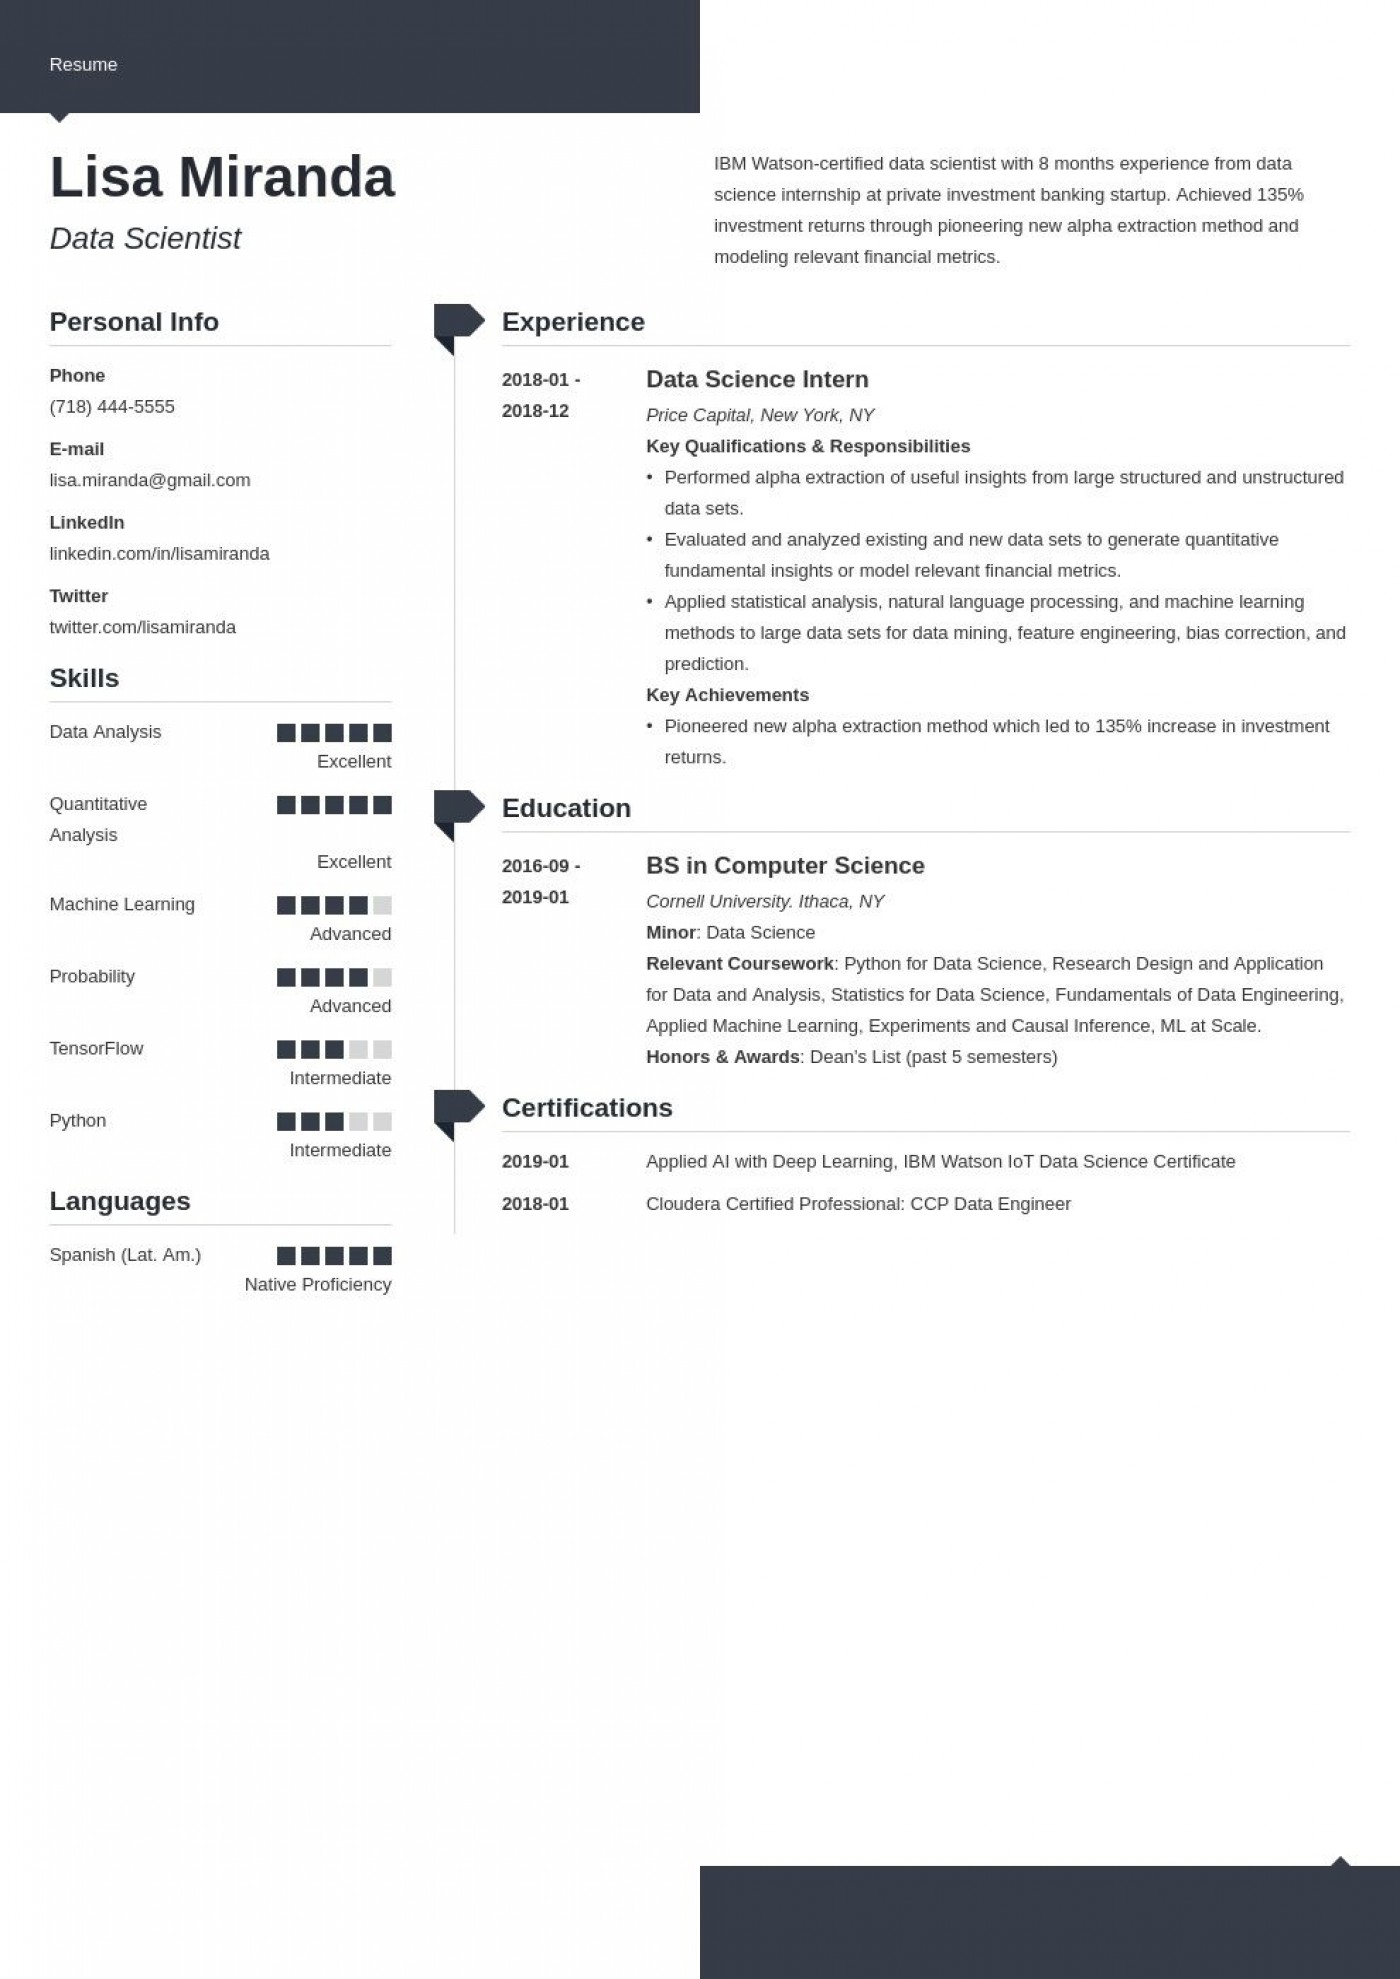 005 Incredible Recent College Graduate Resume Template Image  Word1400